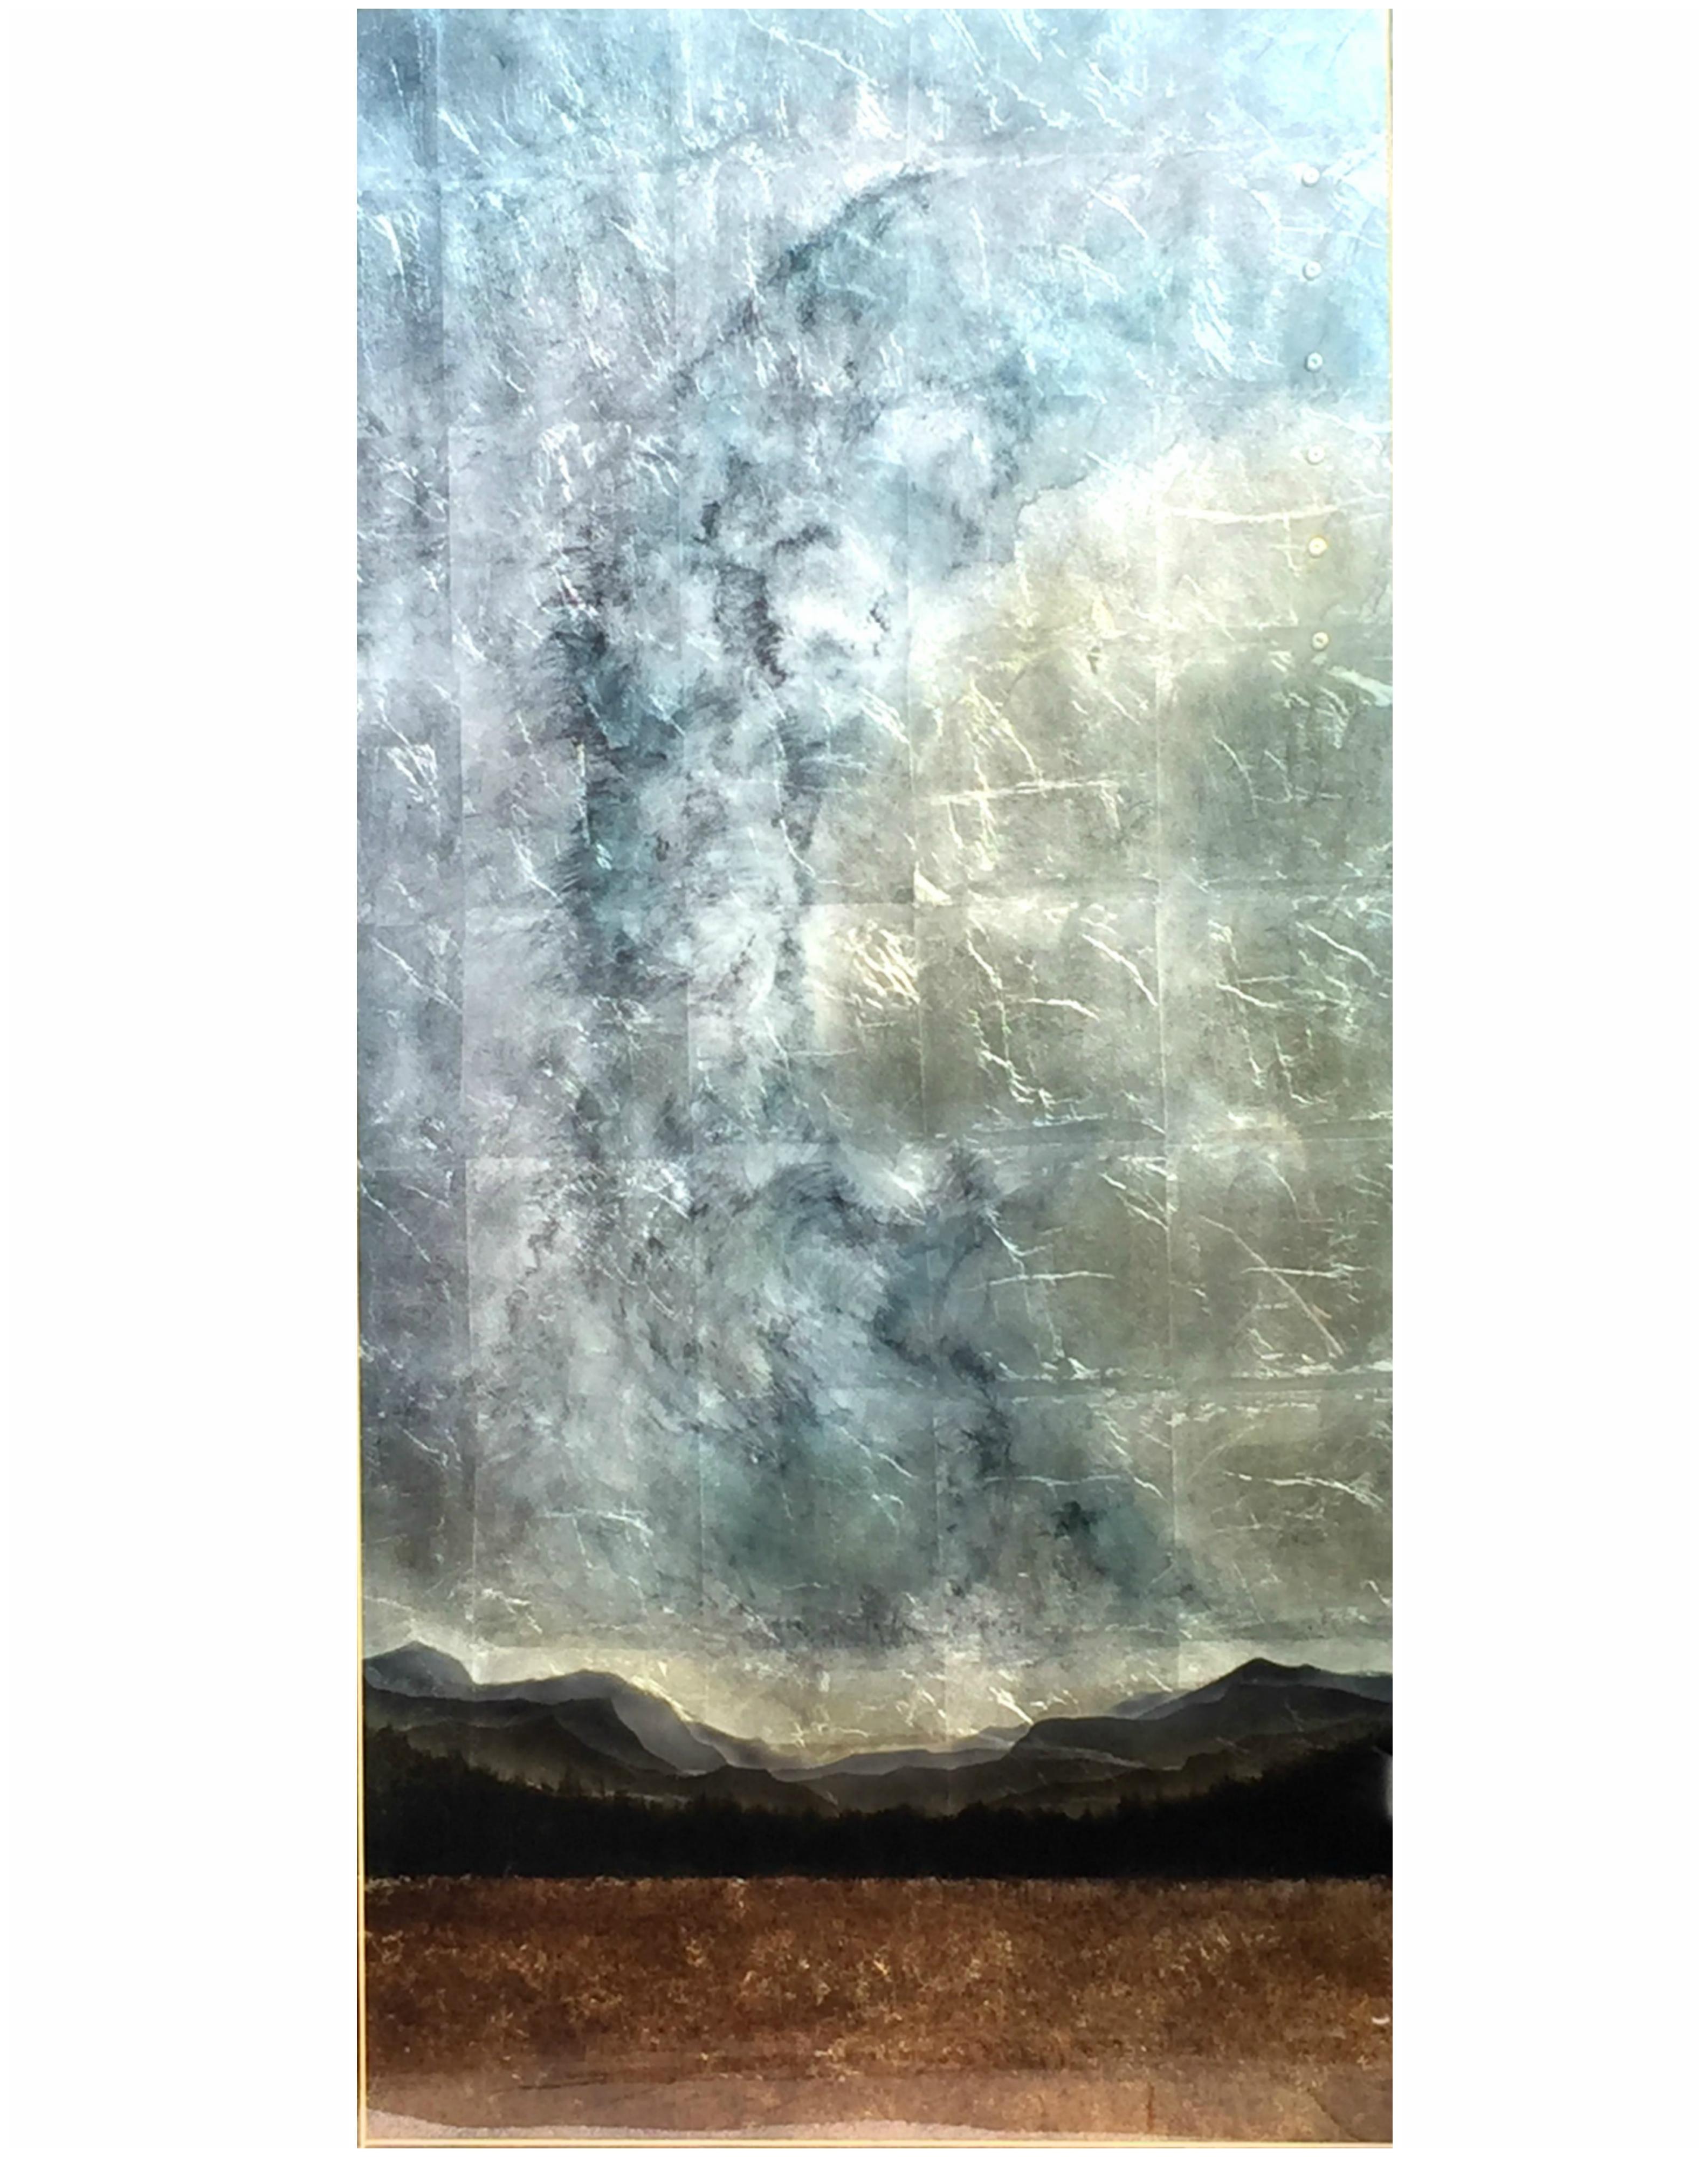 Sky Tower, mixed media landscape painting with resin by David Graff | Effusion Art Gallery + Cast Glass Studio, Invermere BC